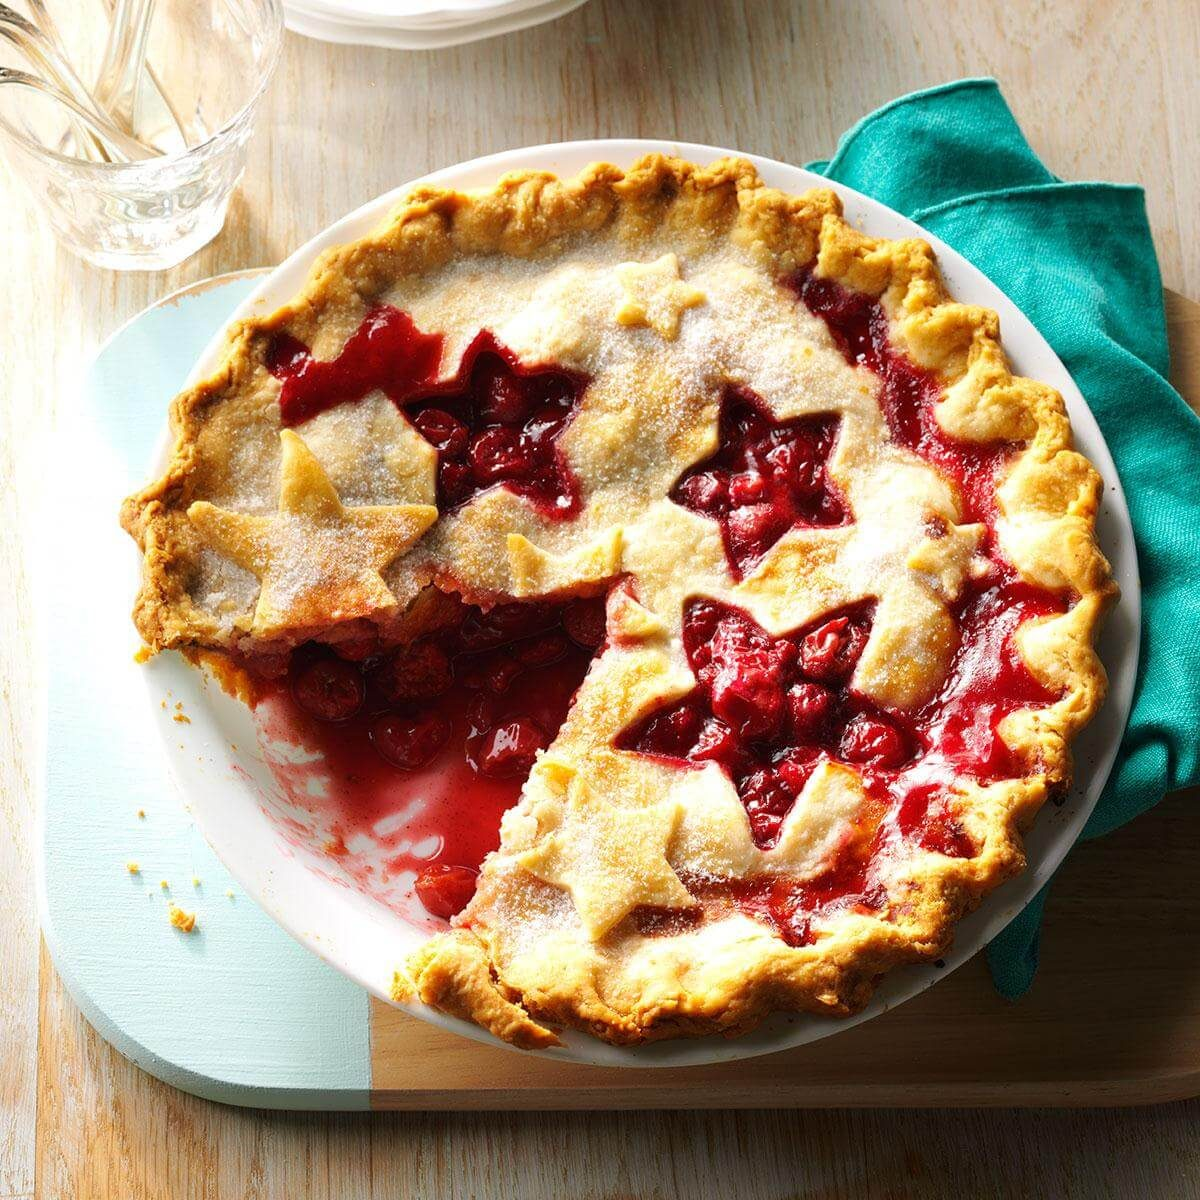 How to Make Cherry Pie from Scratch